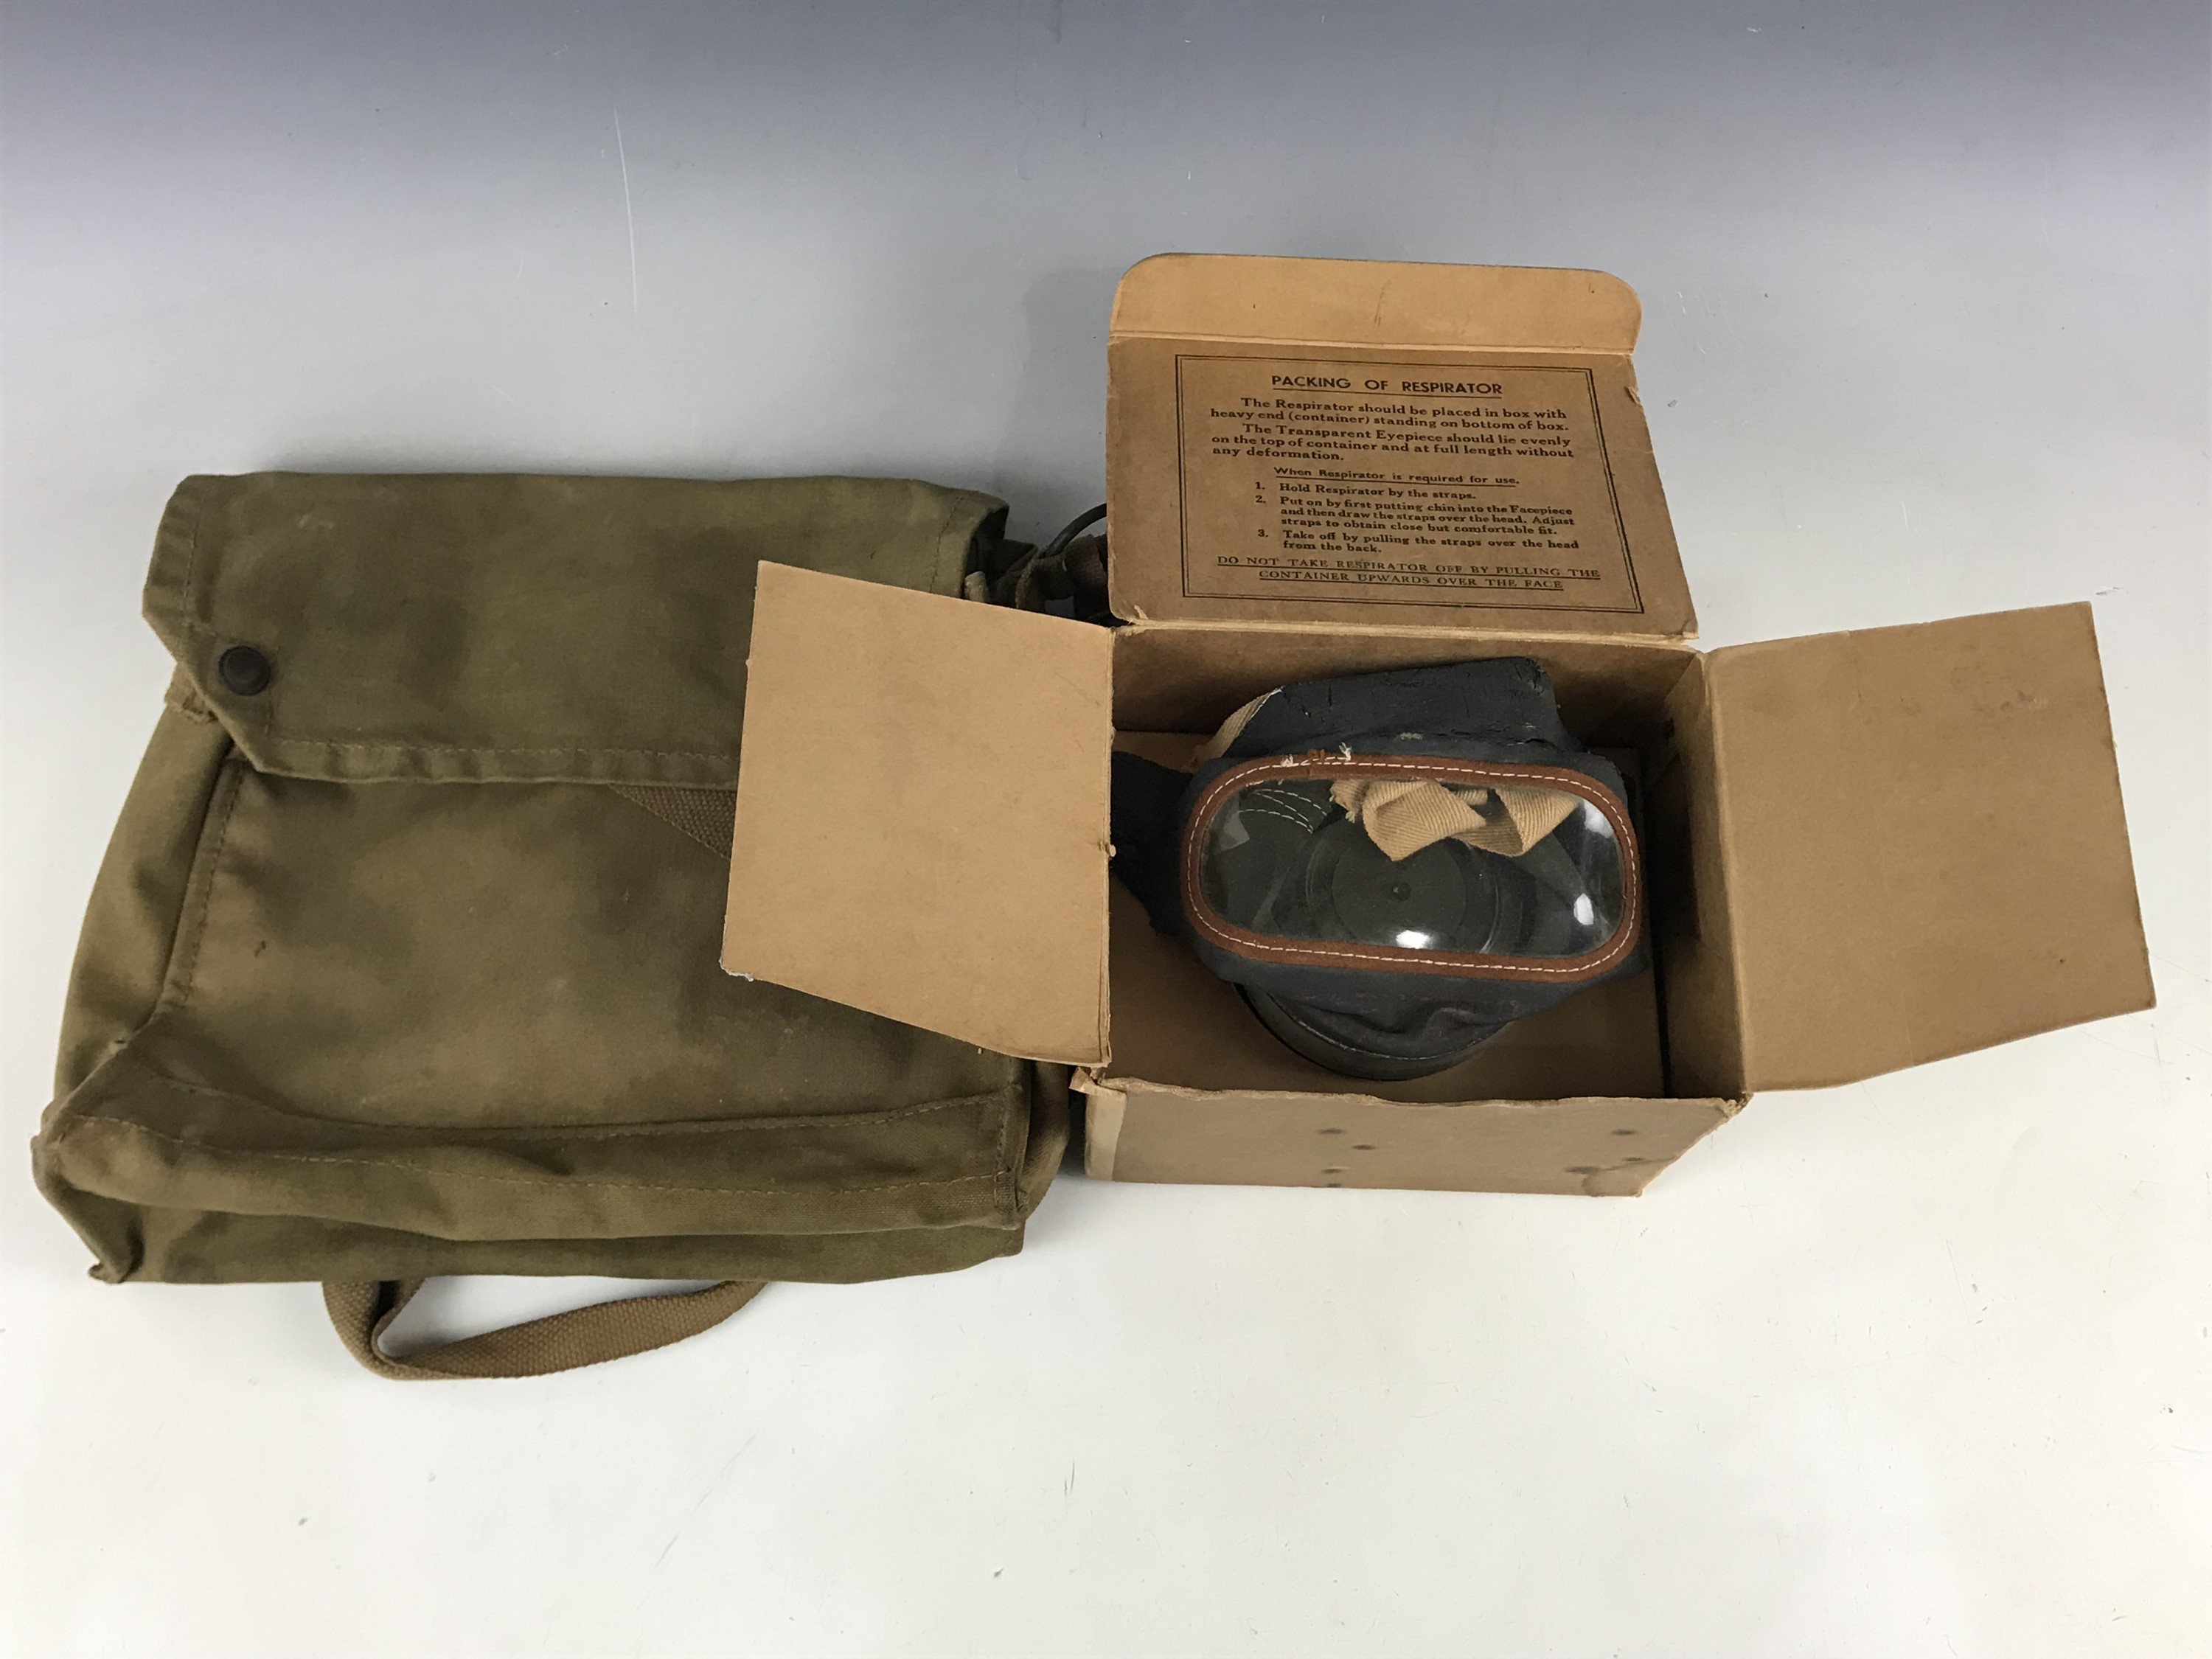 Lot 53 - A Second World War civilian gas mask and a General Service respirator haversack